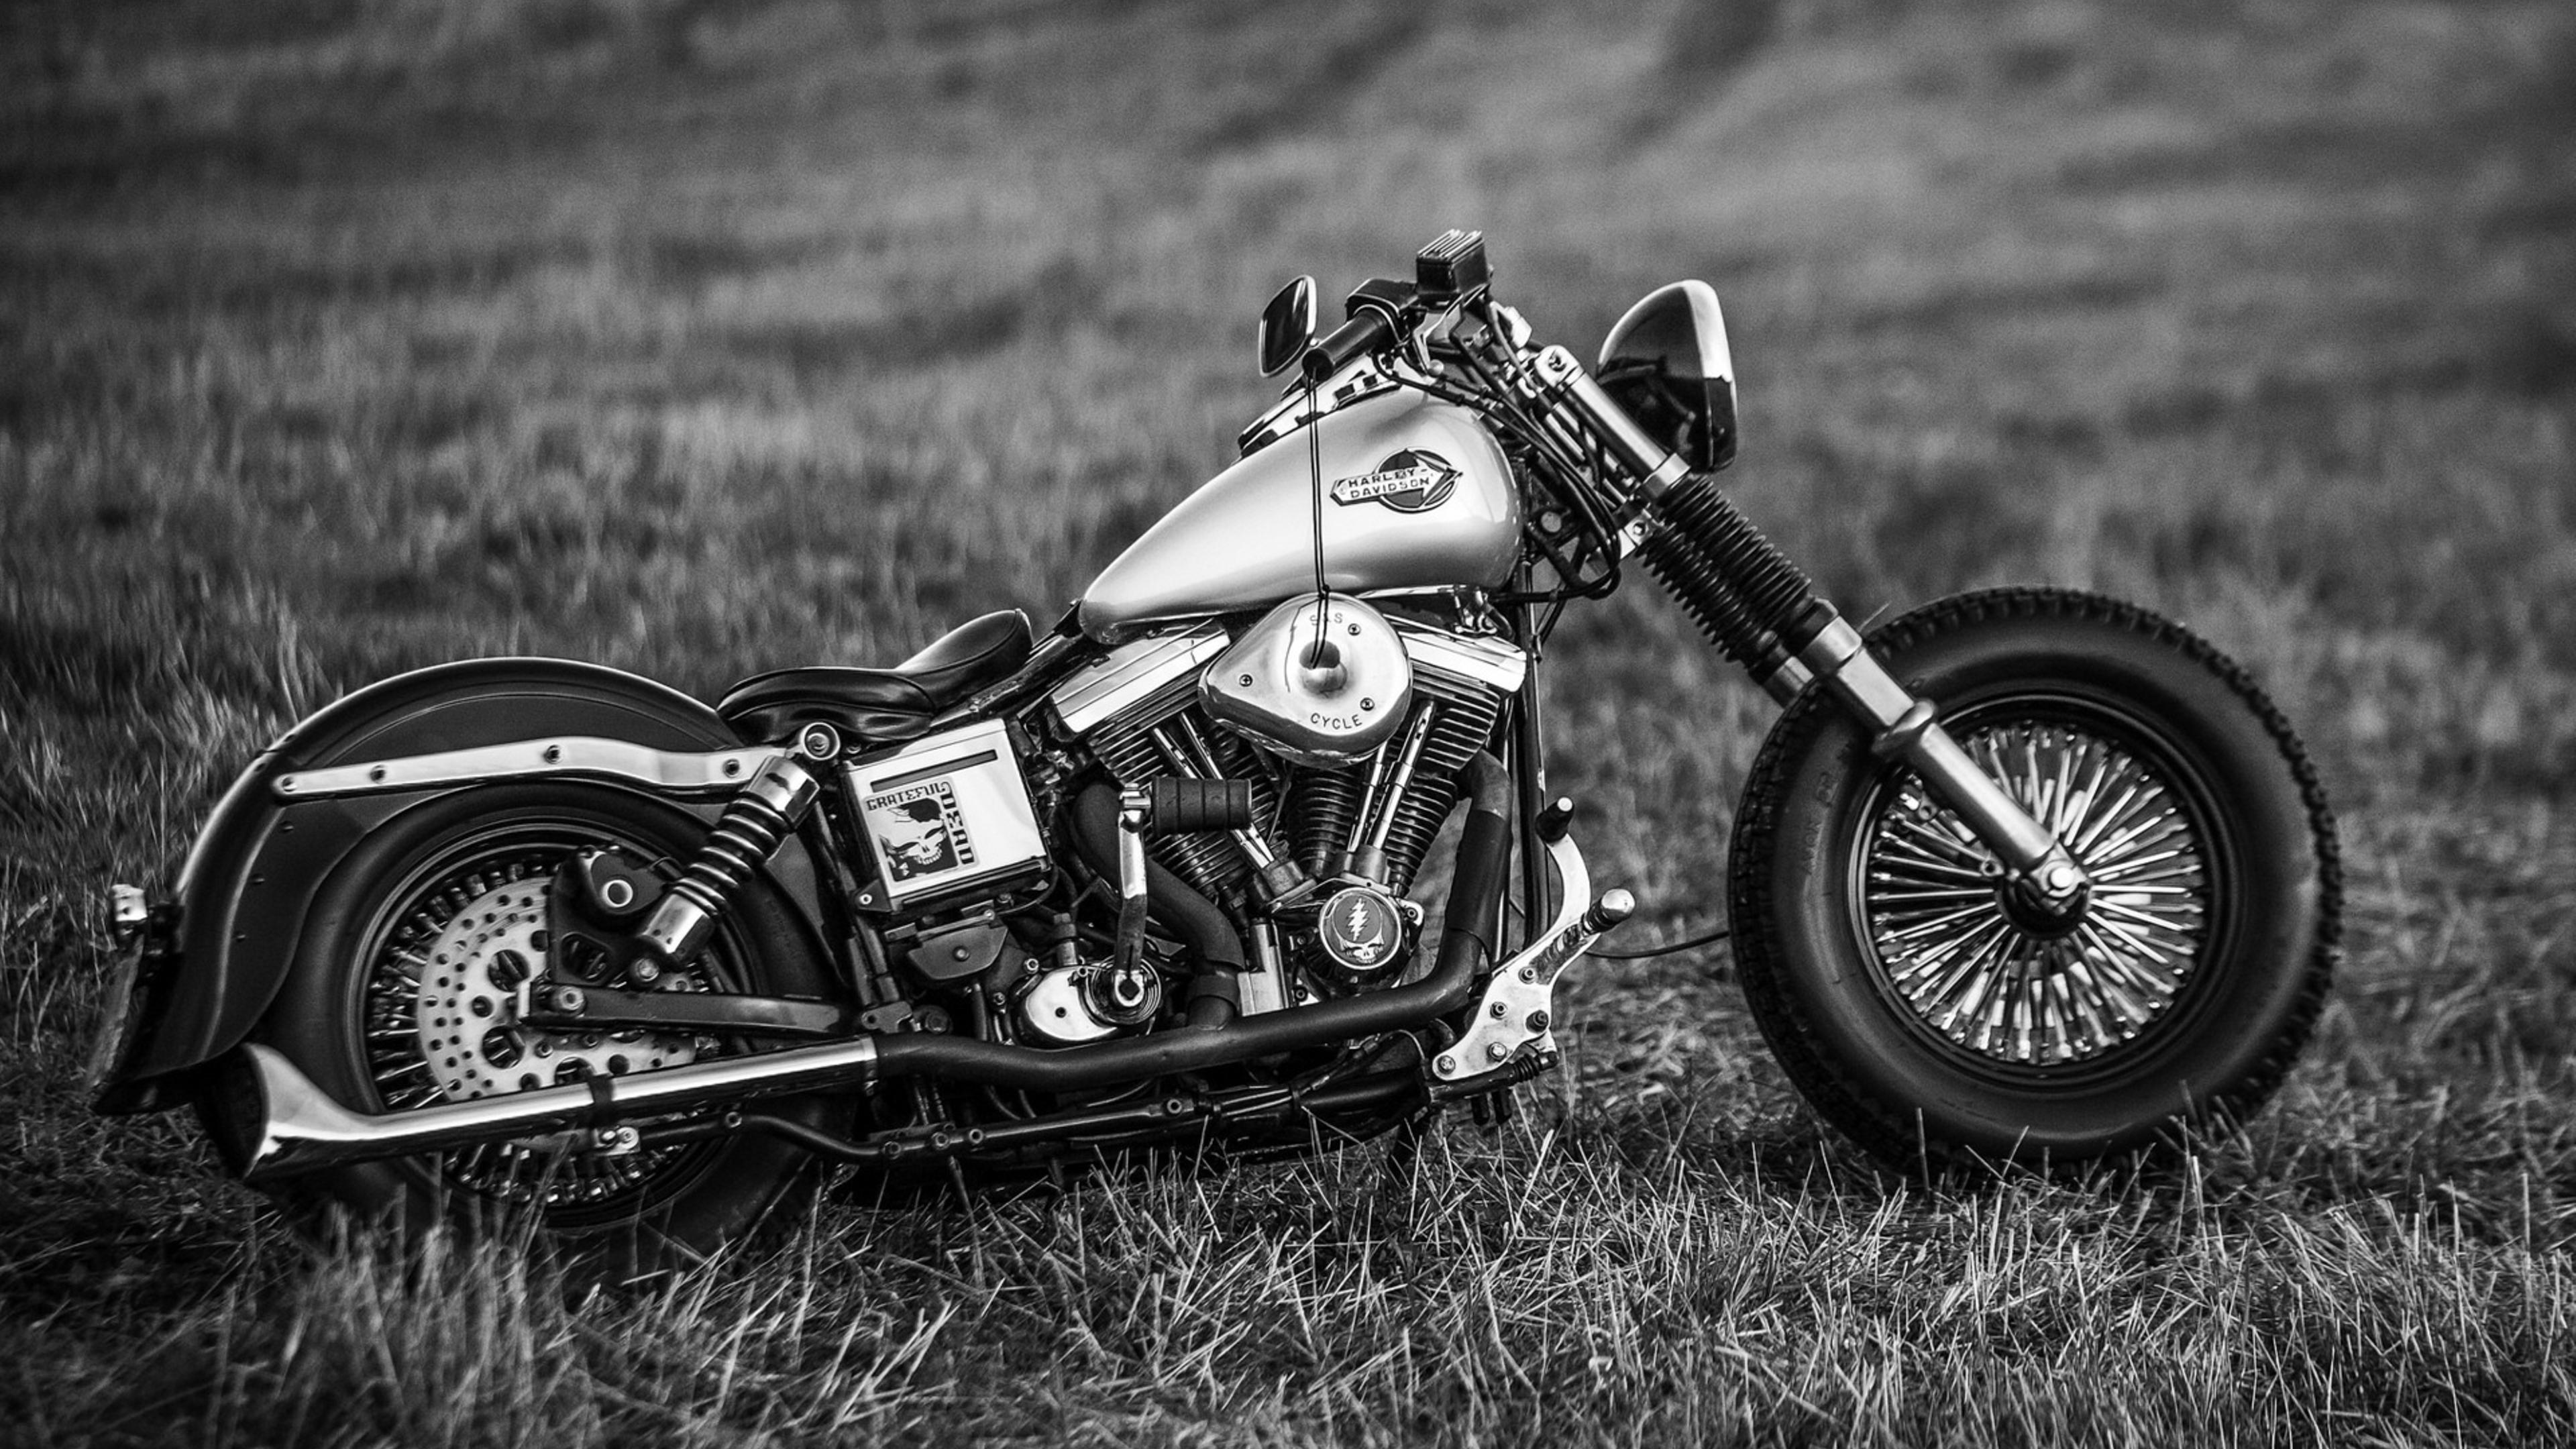 black and white harley davidson motorcycle wallpaper download 3840x2160